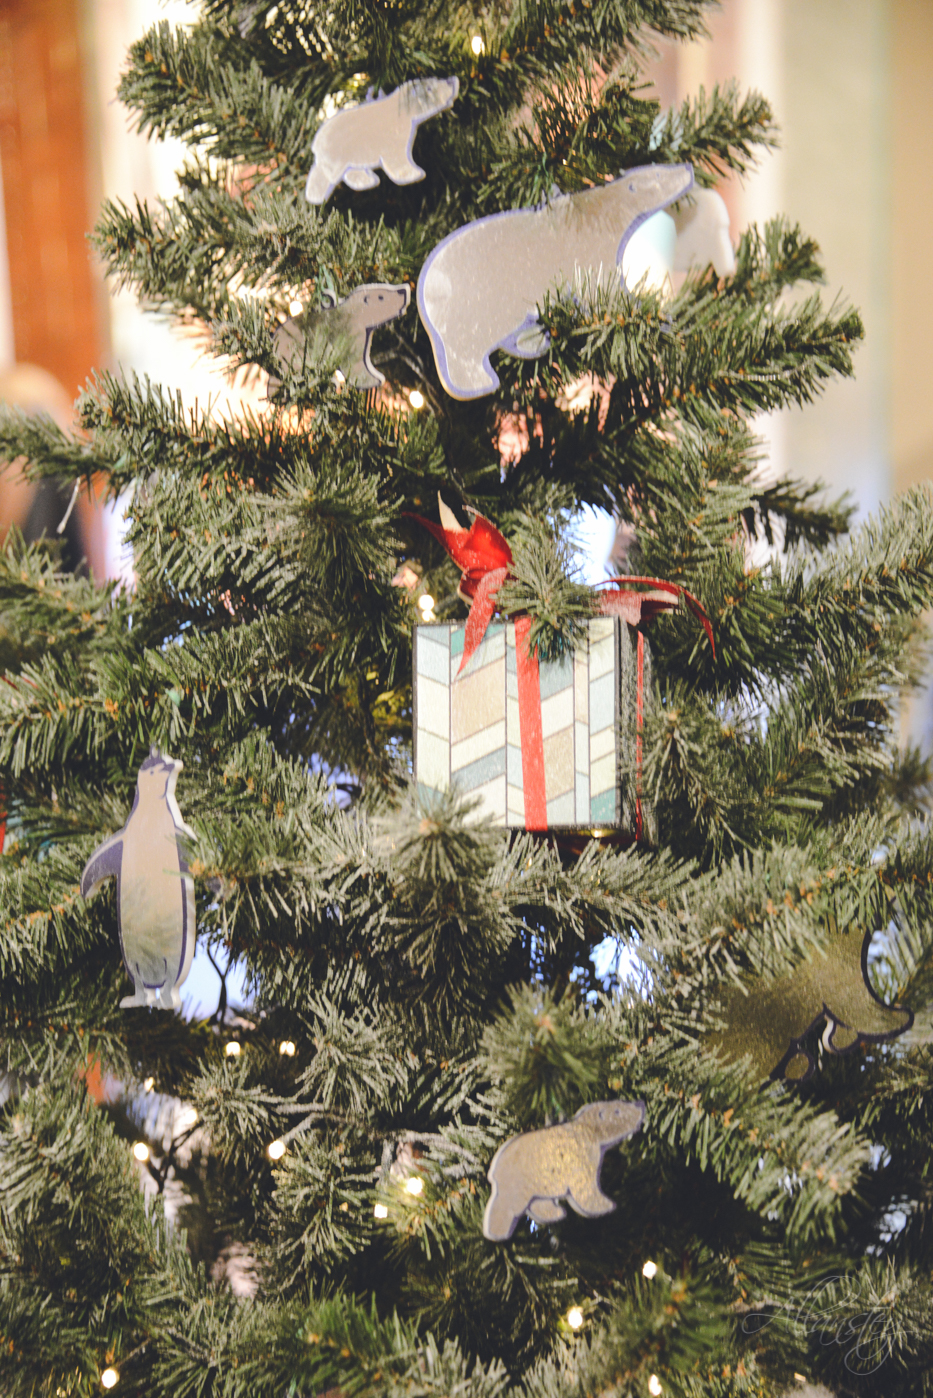 Polar bears, penguins and gifts Christmas tree decorations